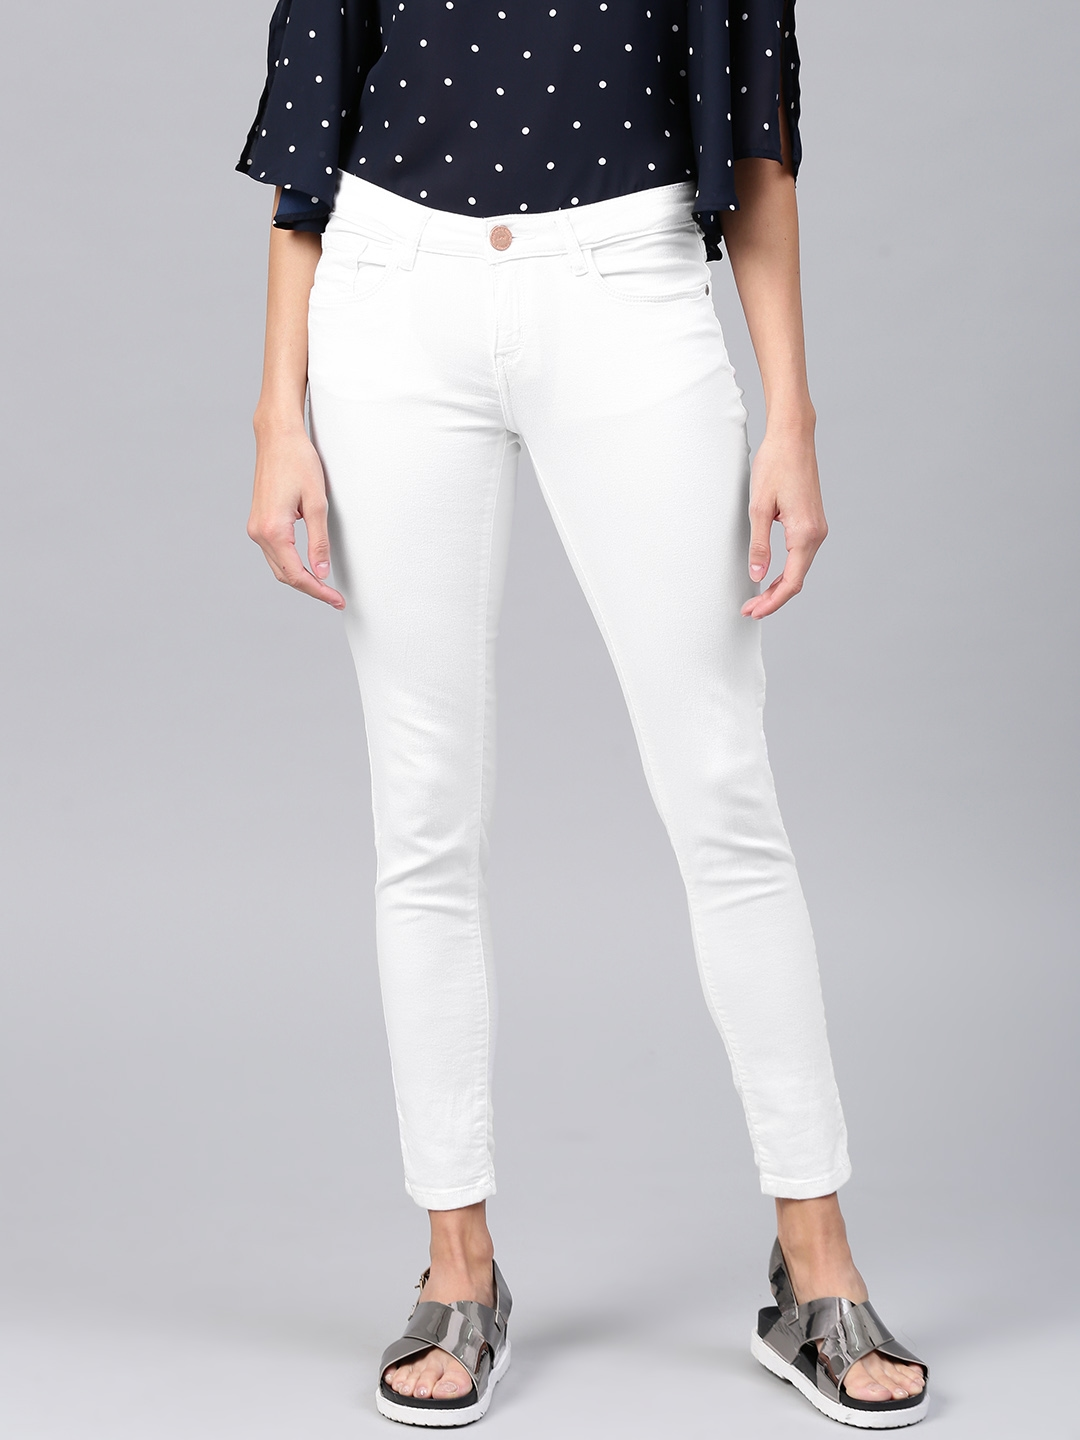 9e017bf2cb Tokyo Talkies Women White Super Skinny Fit Mid-Rise Ankle Length  Stretchable Jeans